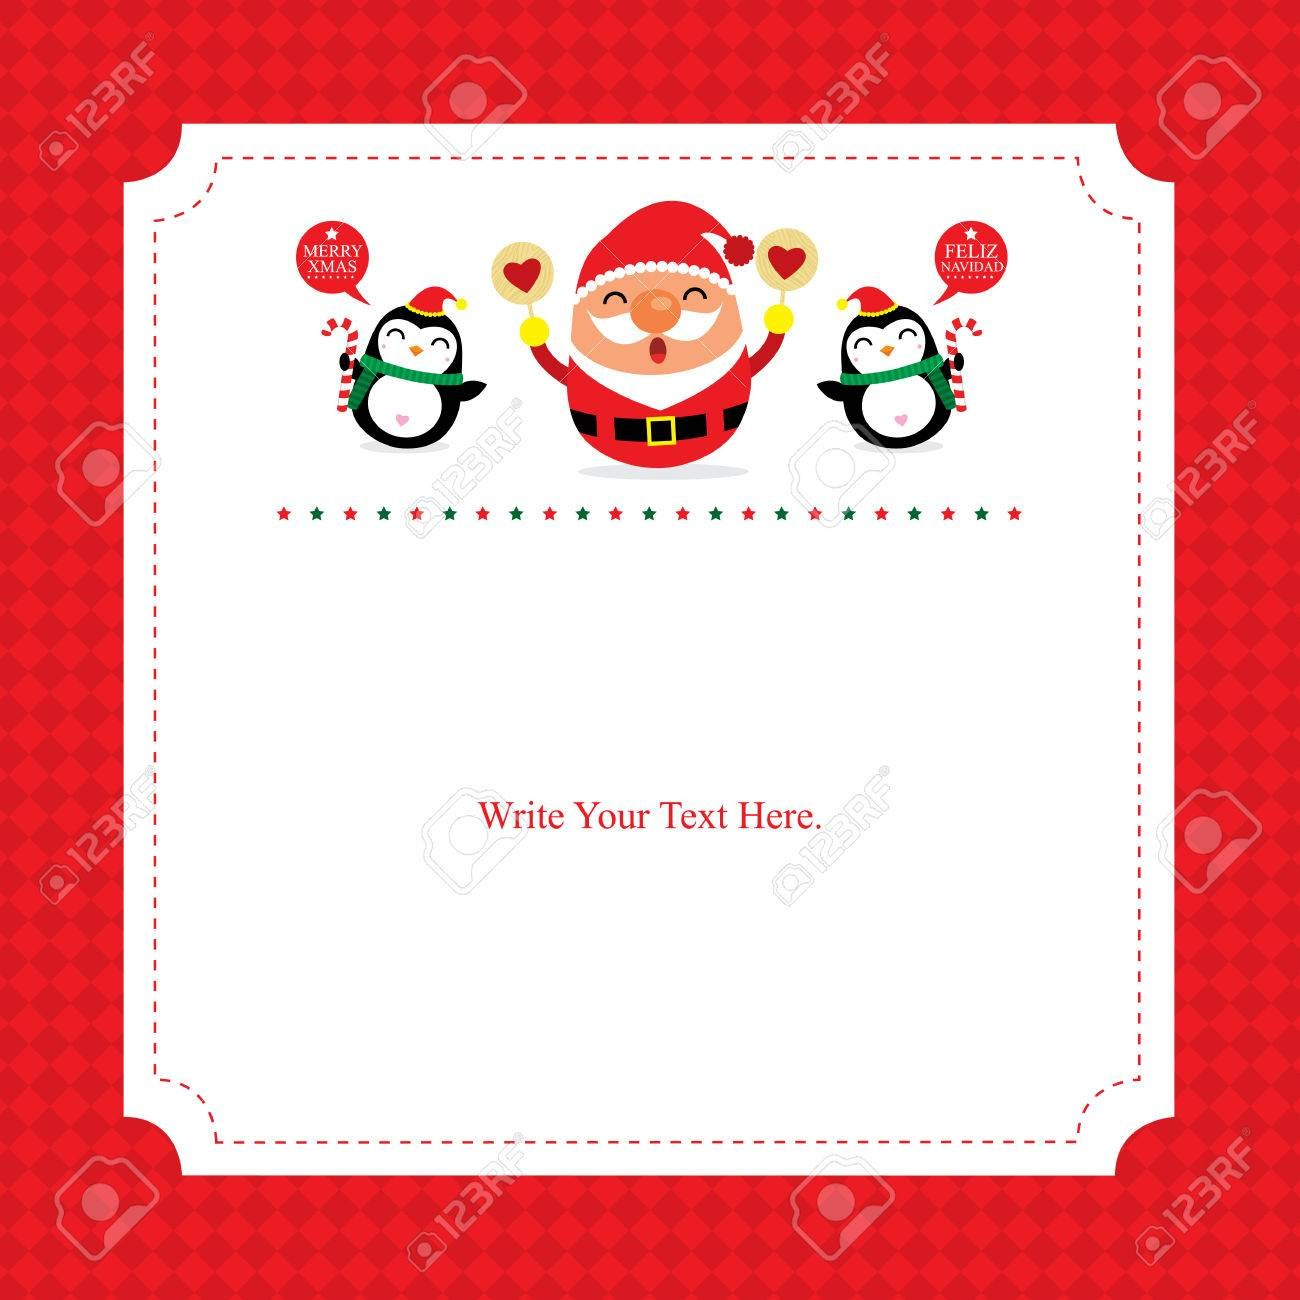 Christmas Card Template Santa Claus Royalty Free Cliparts Vectors Pertaining To Happy Holidays Card Template